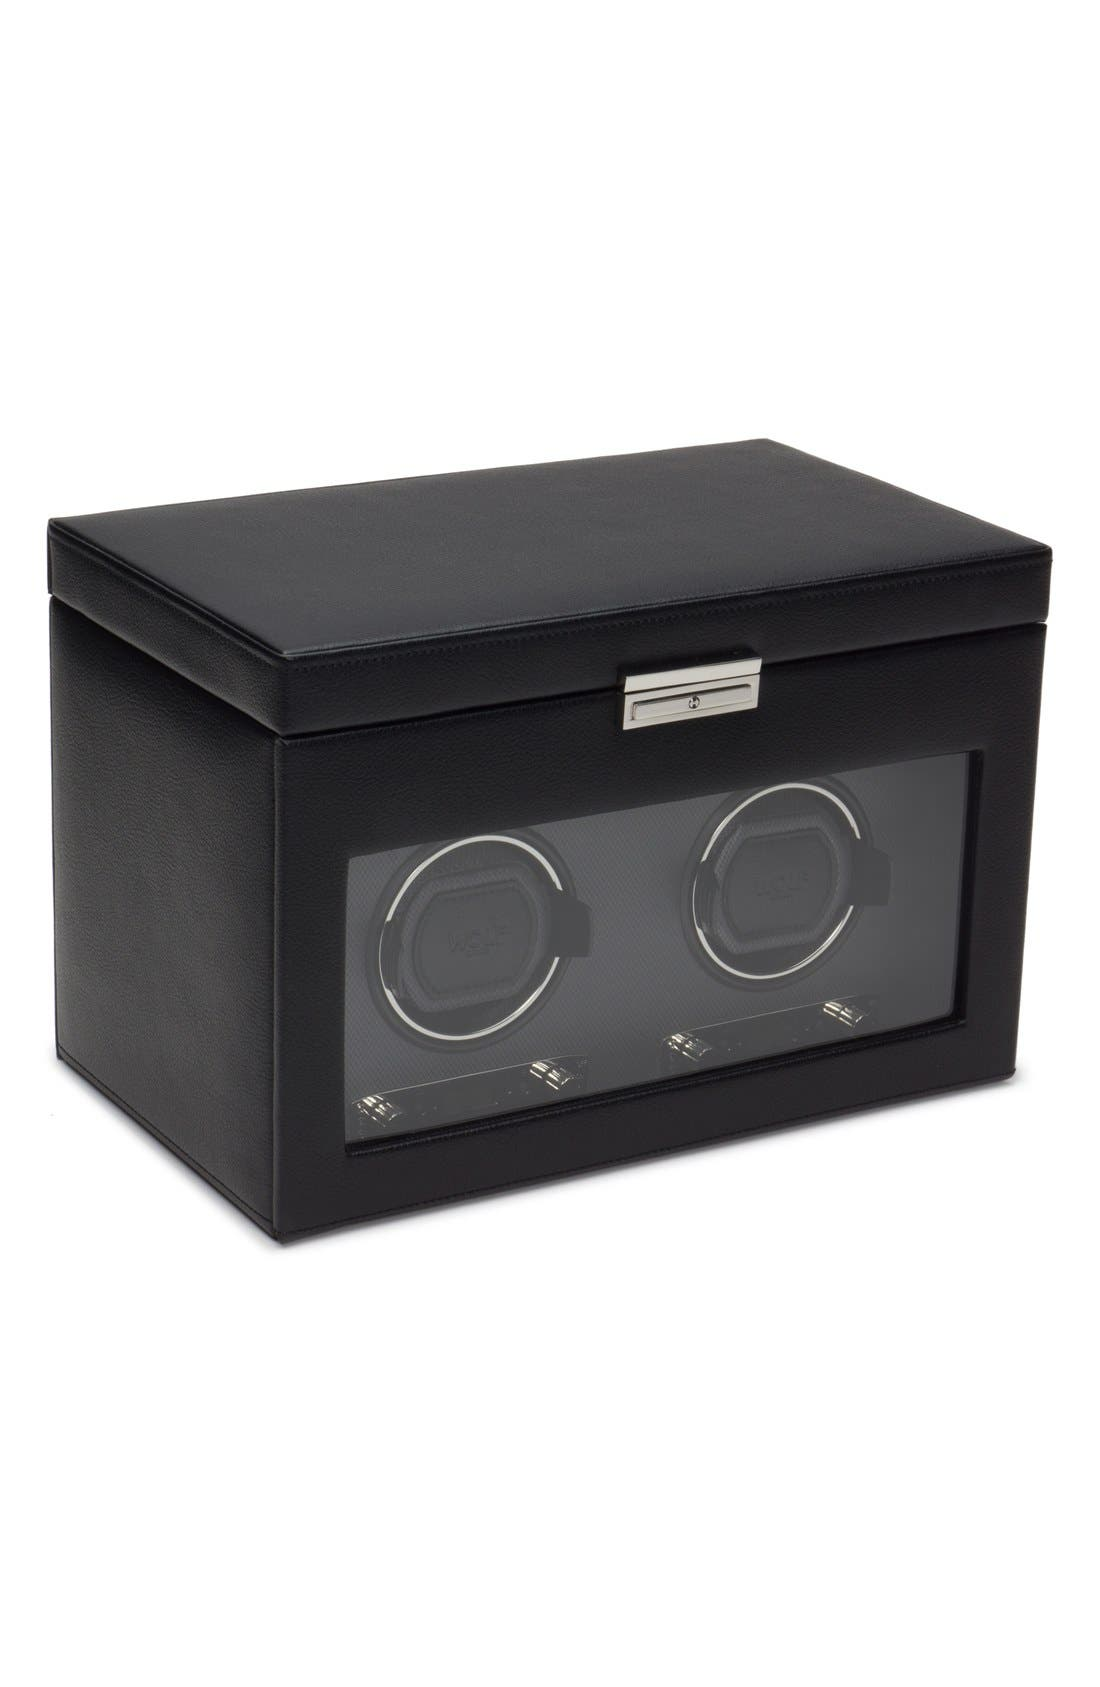 Viceroy Double Watch Winder & Storage Space,                         Main,                         color, Black